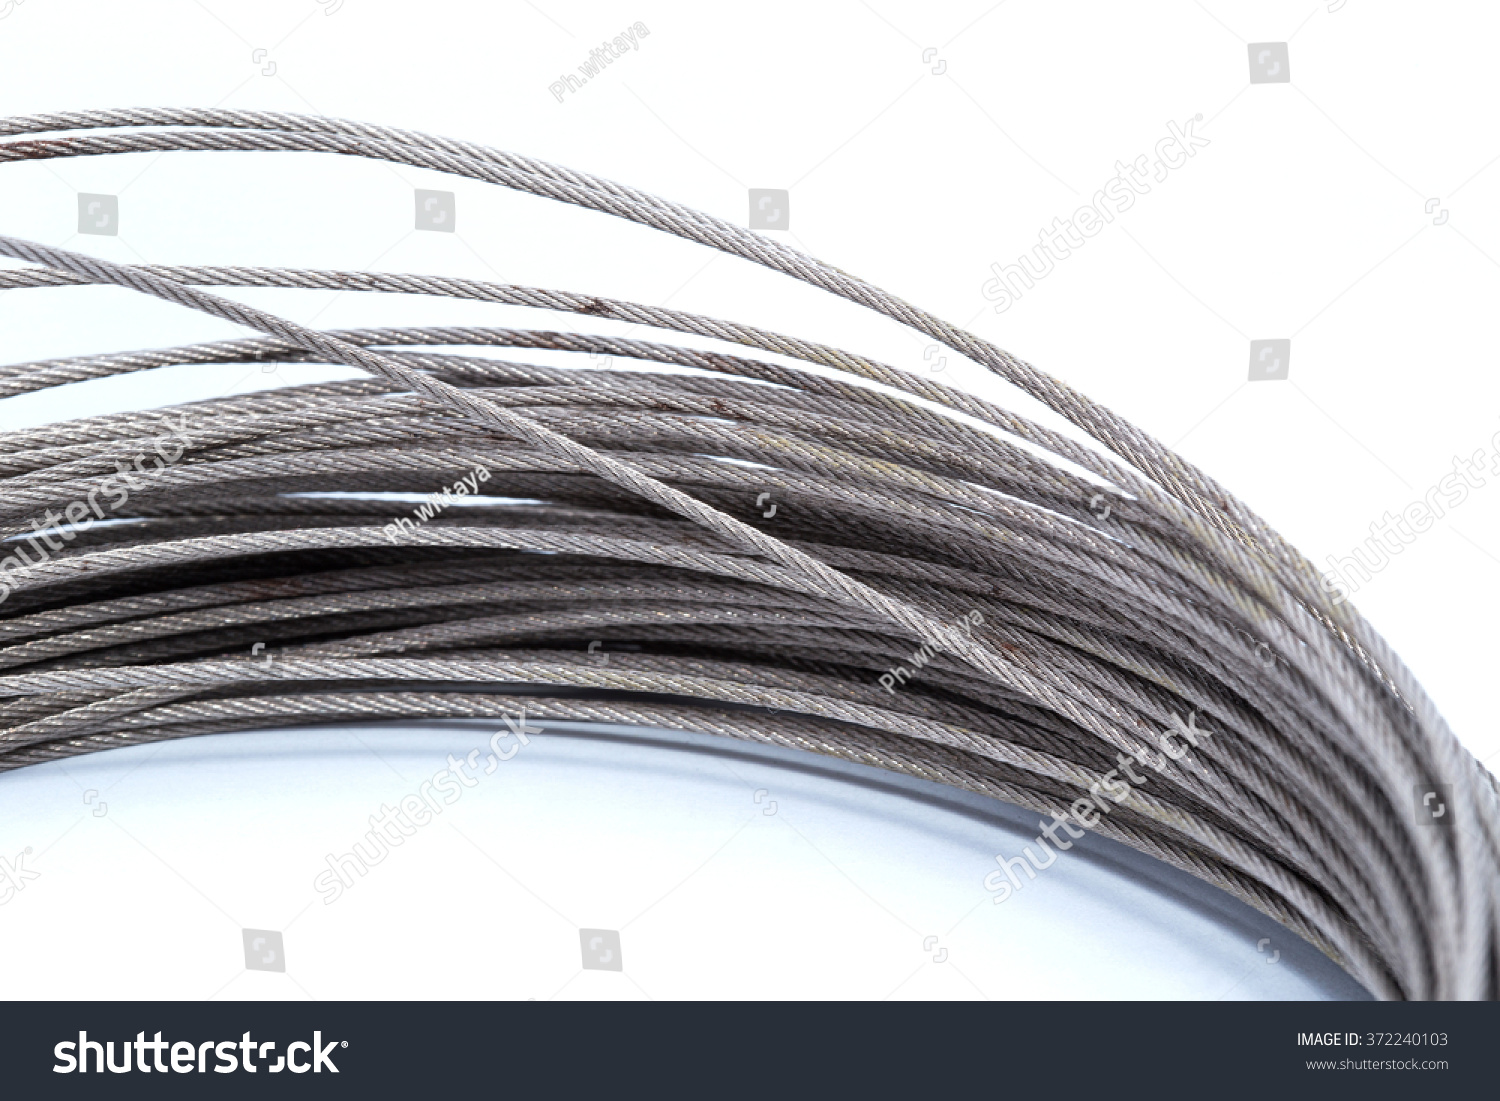 Steel Wire Rope Cable Closeup Stock Photo 372240103 - Shutterstock